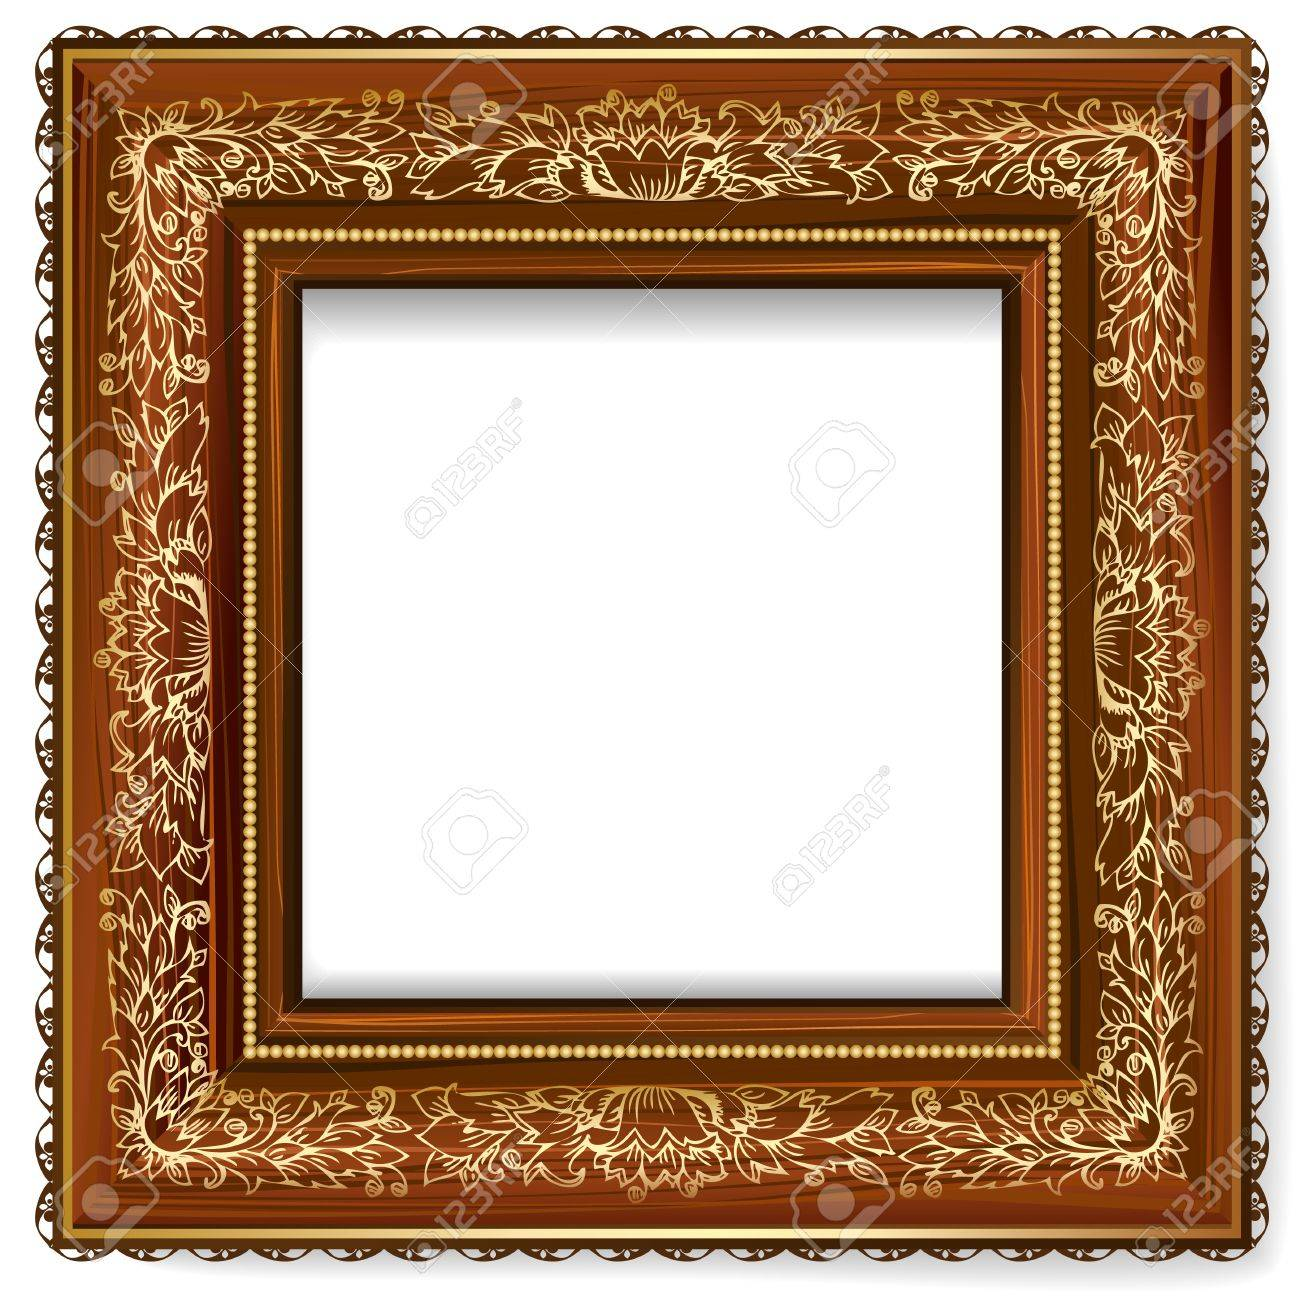 Wooden Frame With A Retro Pattern With Gold Leaf Royalty Free ...